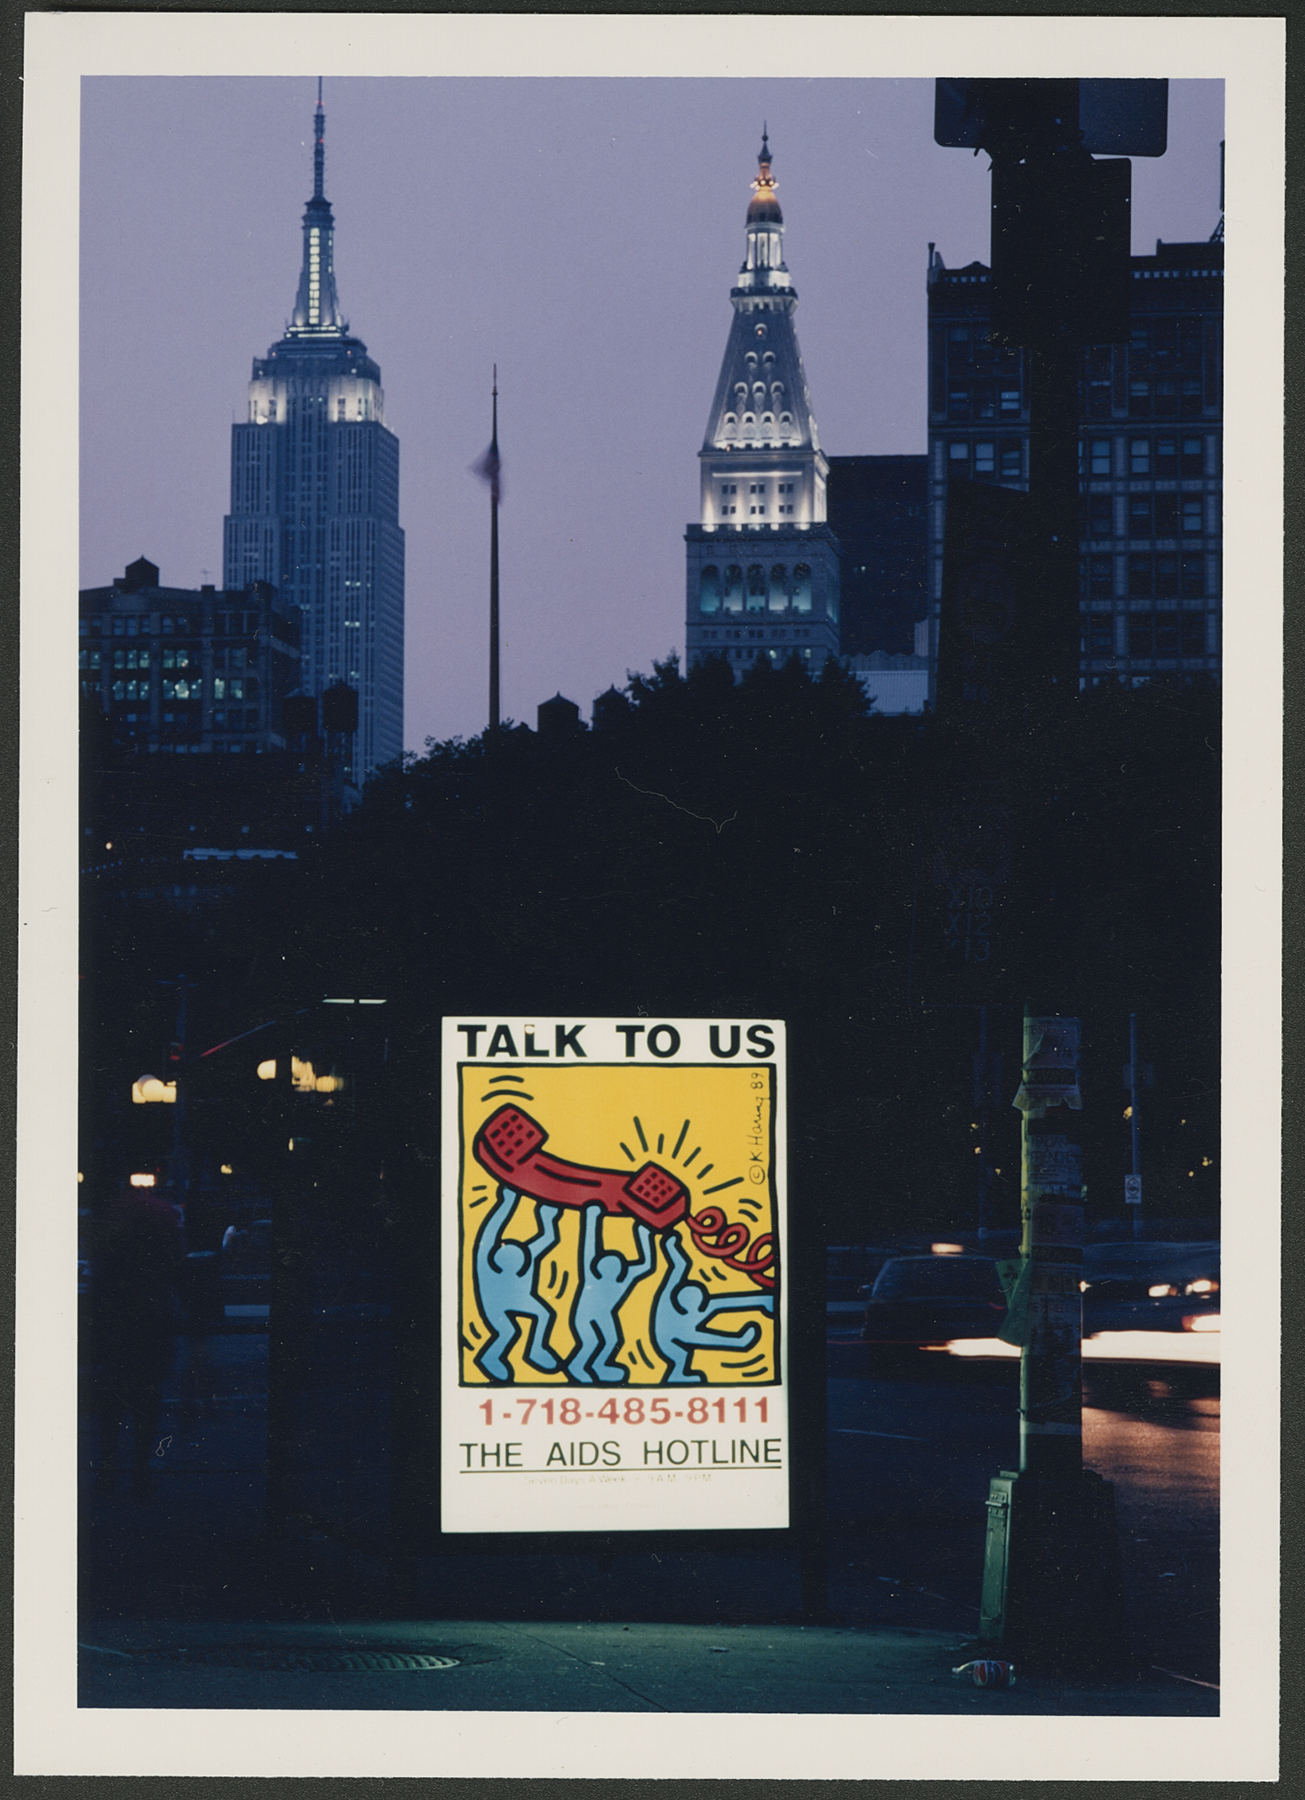 AIDS Hotline poster, NYC, 1989